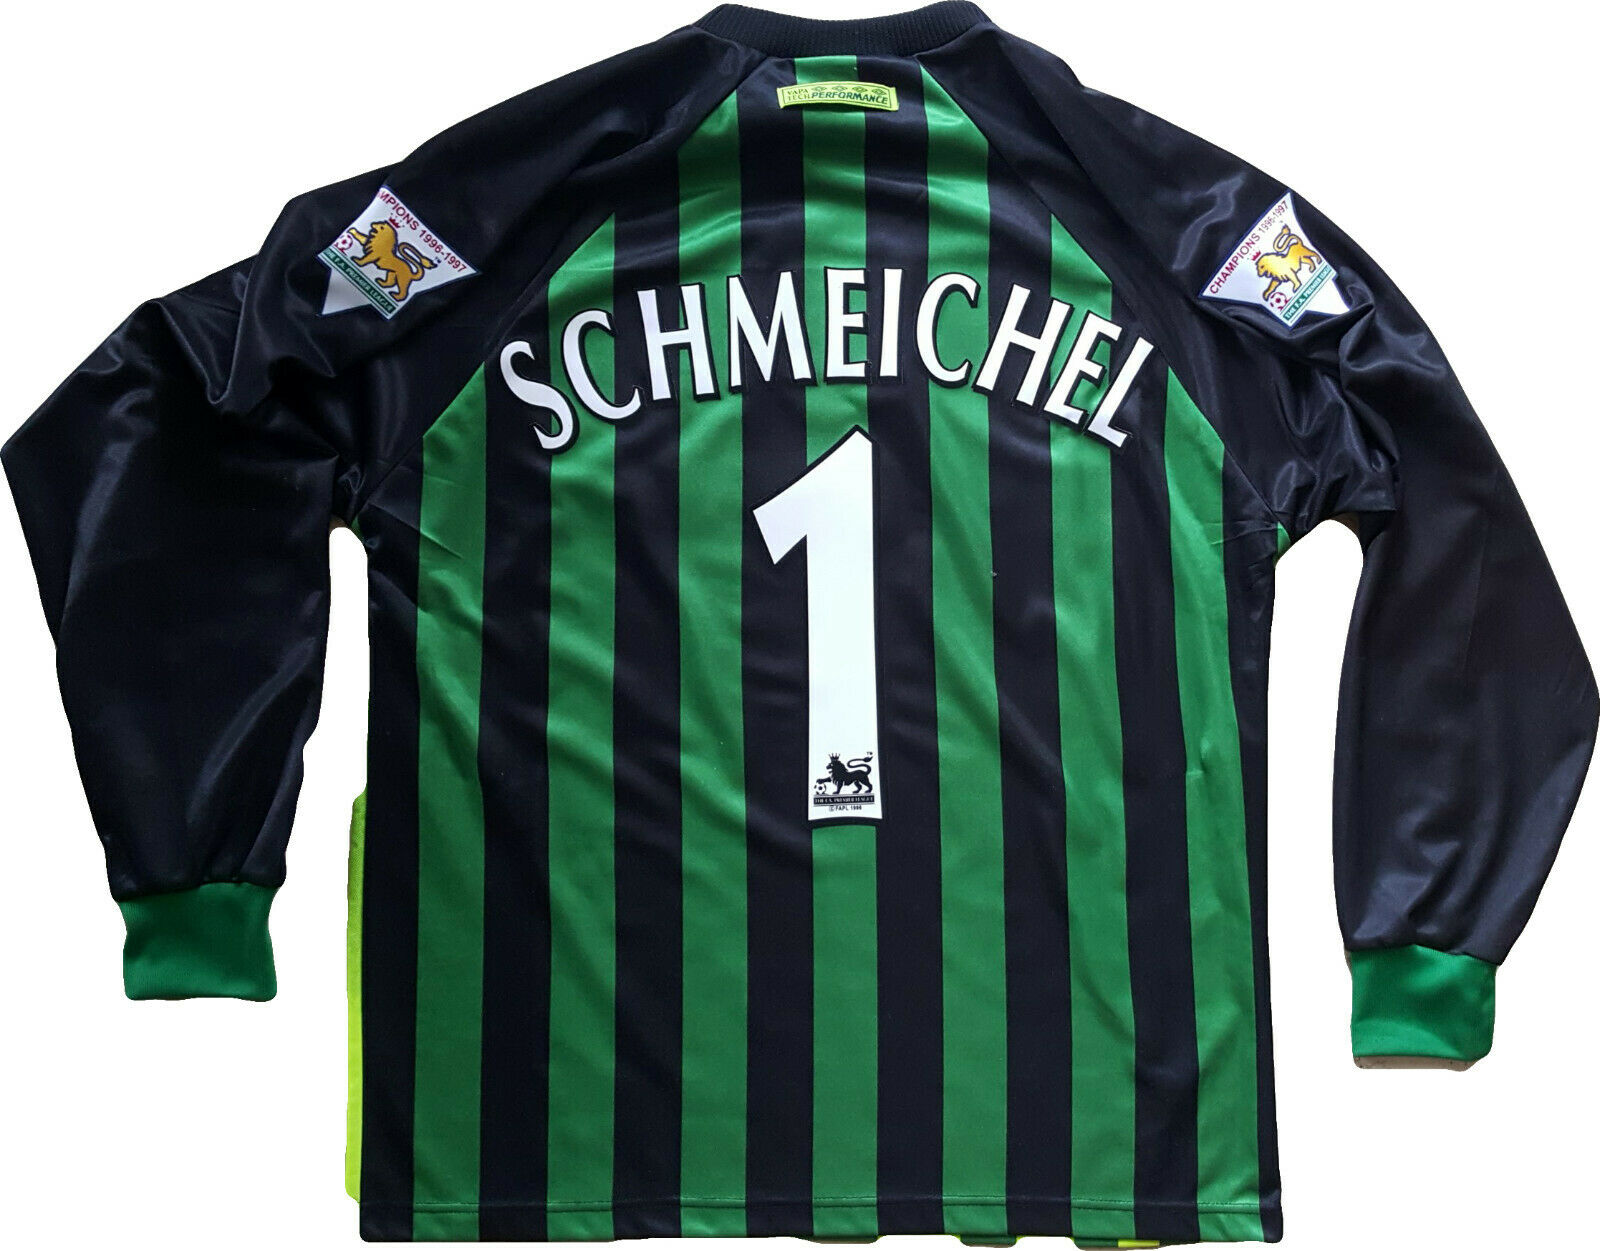 Shirt Schmeichel uomochester United MUFC MUFC MUFC goalkeeper jersey player issue nuovo M 369